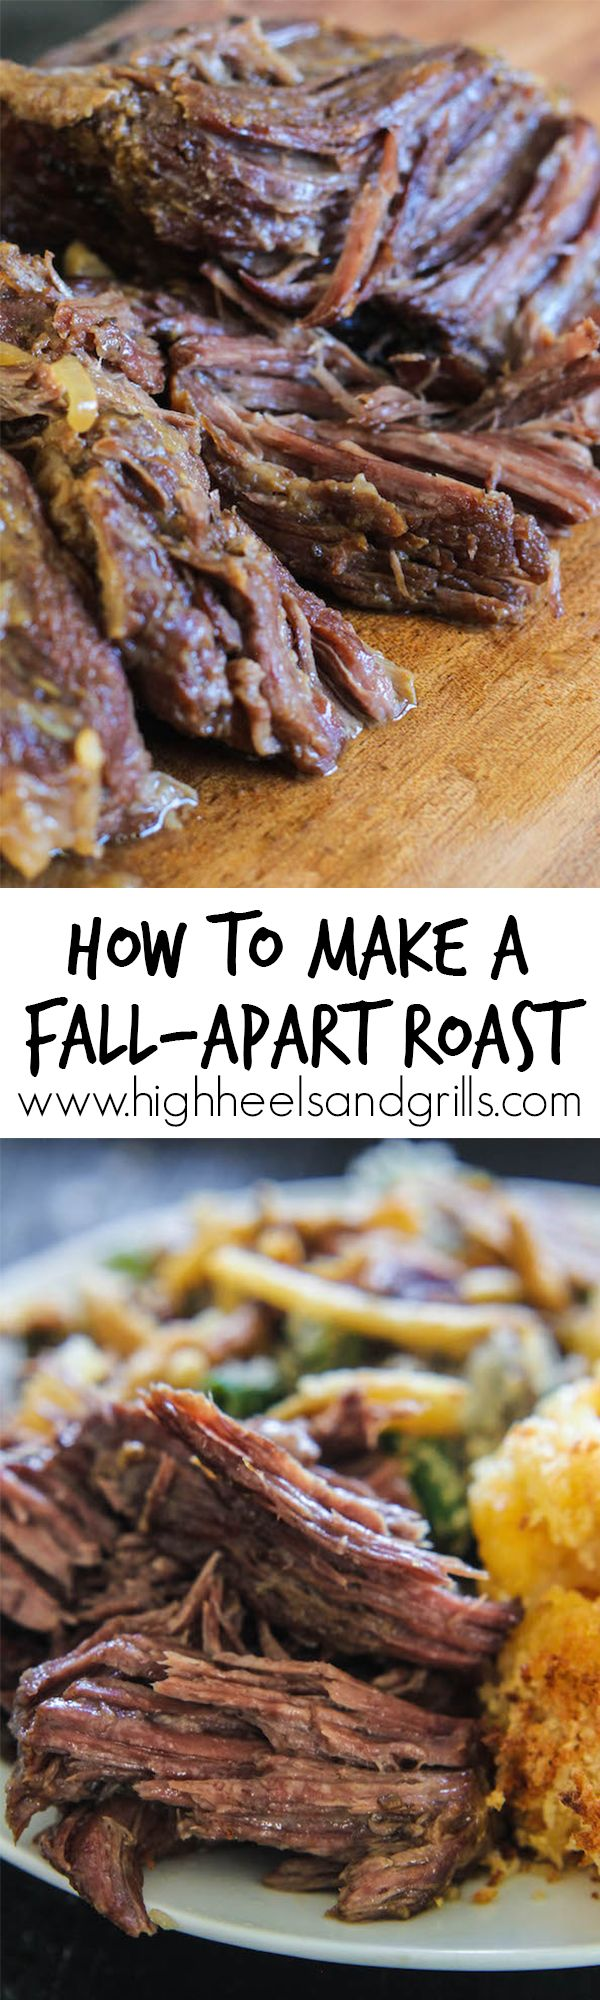 How to Make a Fall-Apart Roast